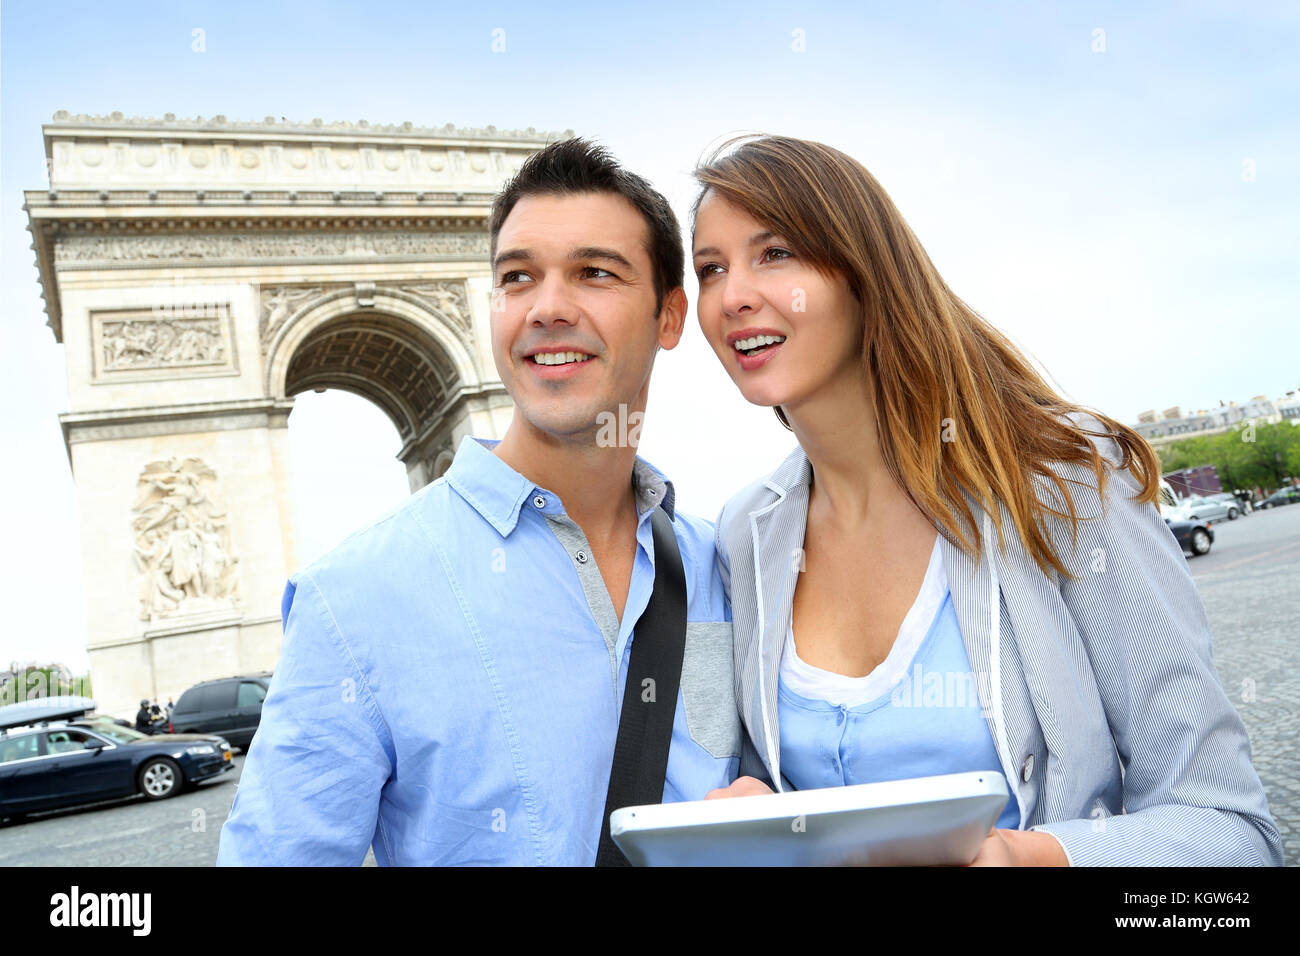 Couple using tablet by the Arch of Triumph - Stock Image